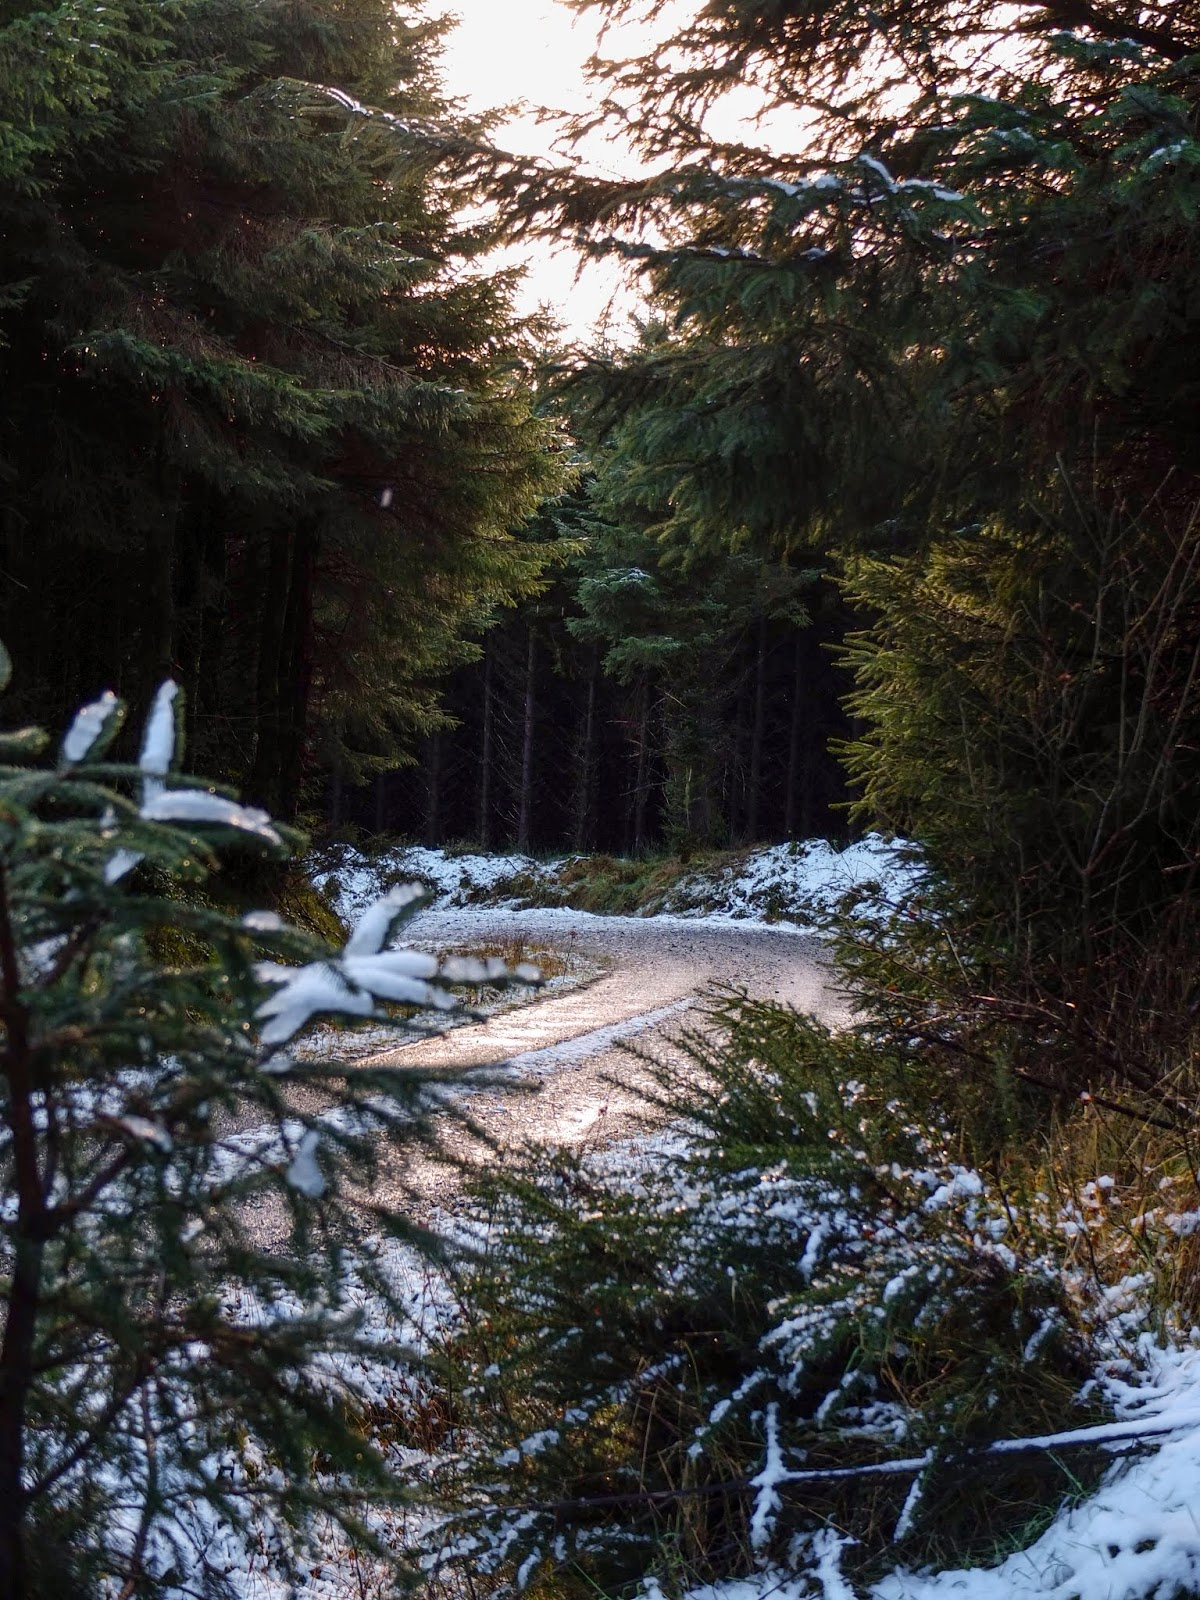 A curved woodland track surrounded by melting snow in the Boggeragh Mountains, County Cork.